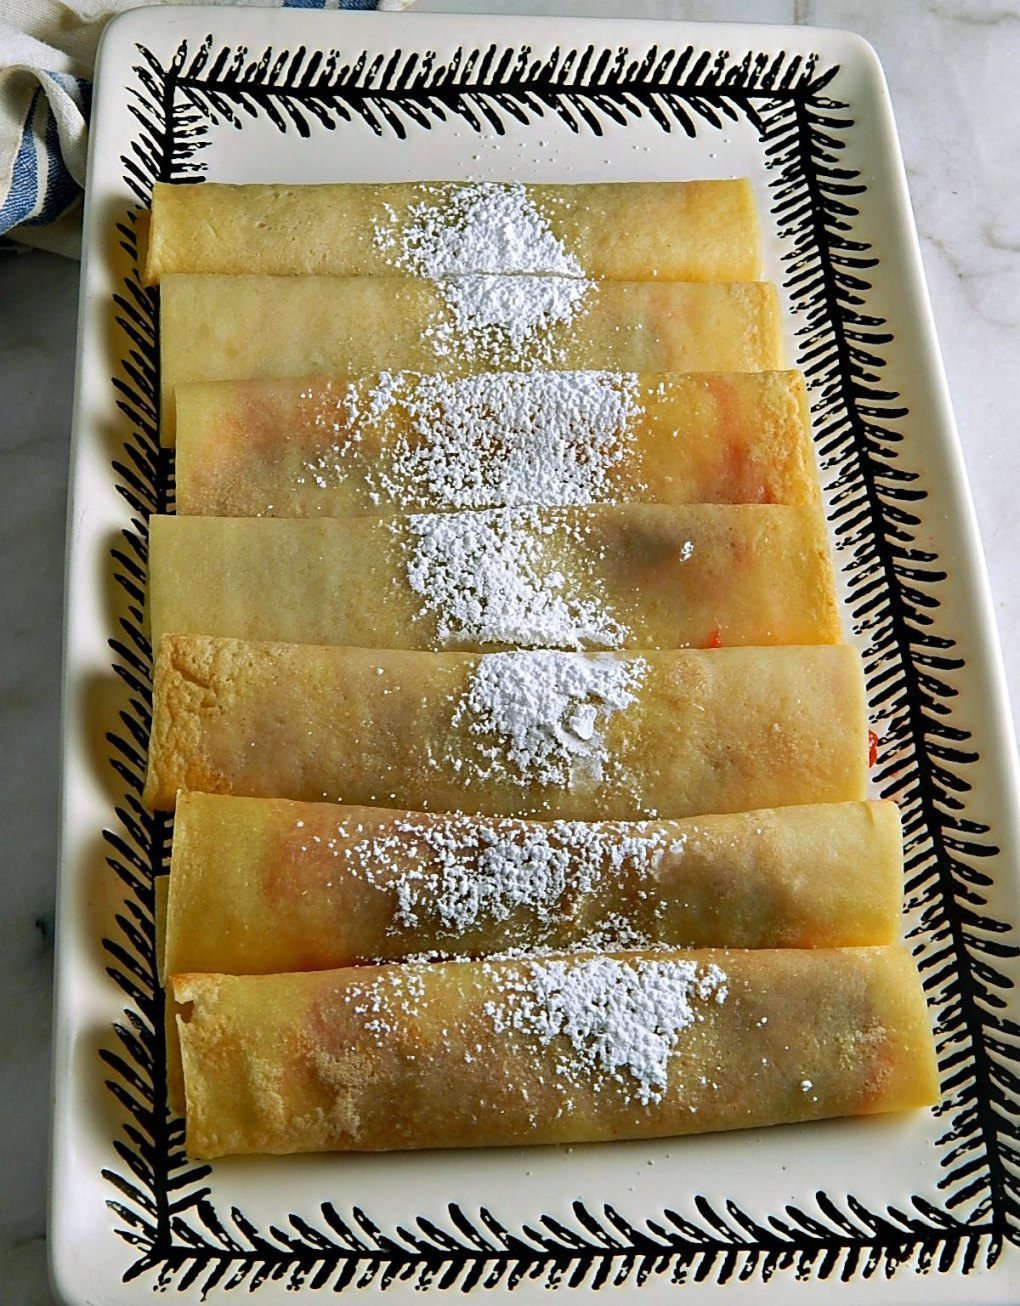 Oven Sheet Pan Crepes